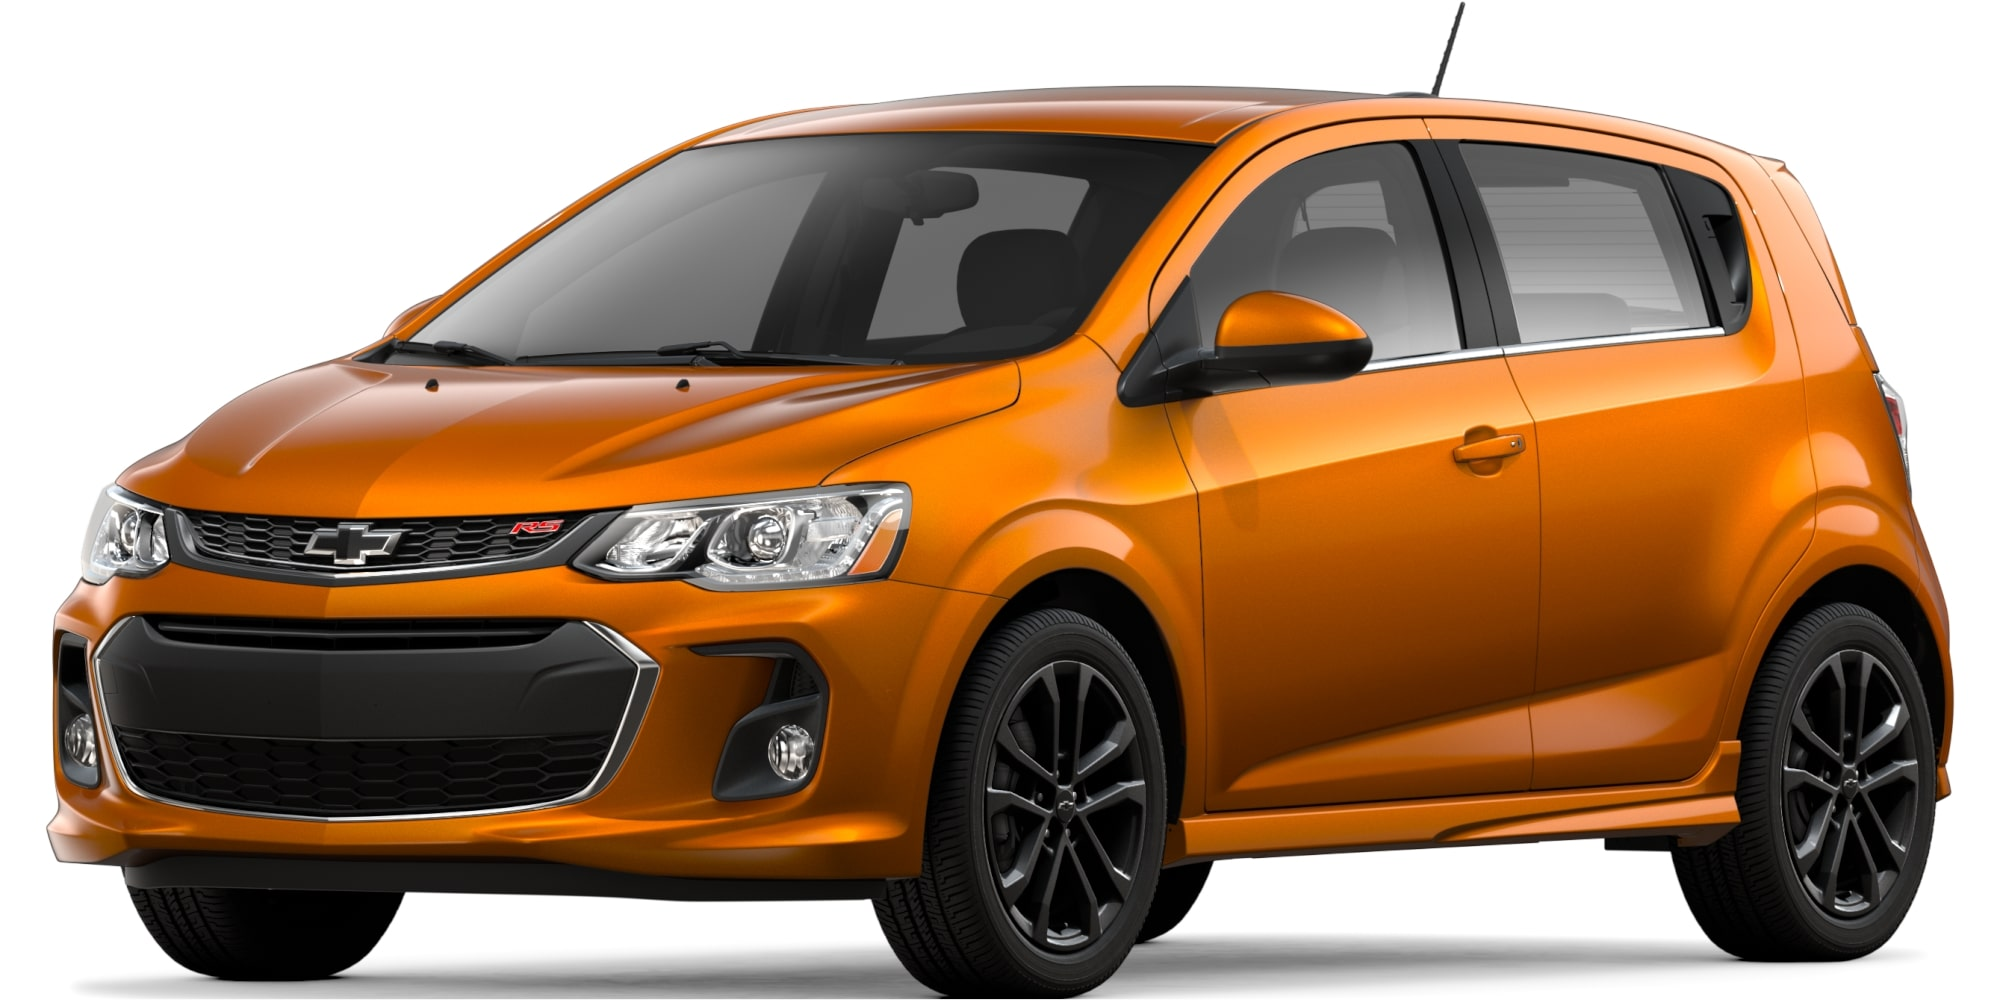 Chevrolet Sonic Owners Manual: OnStar Overview